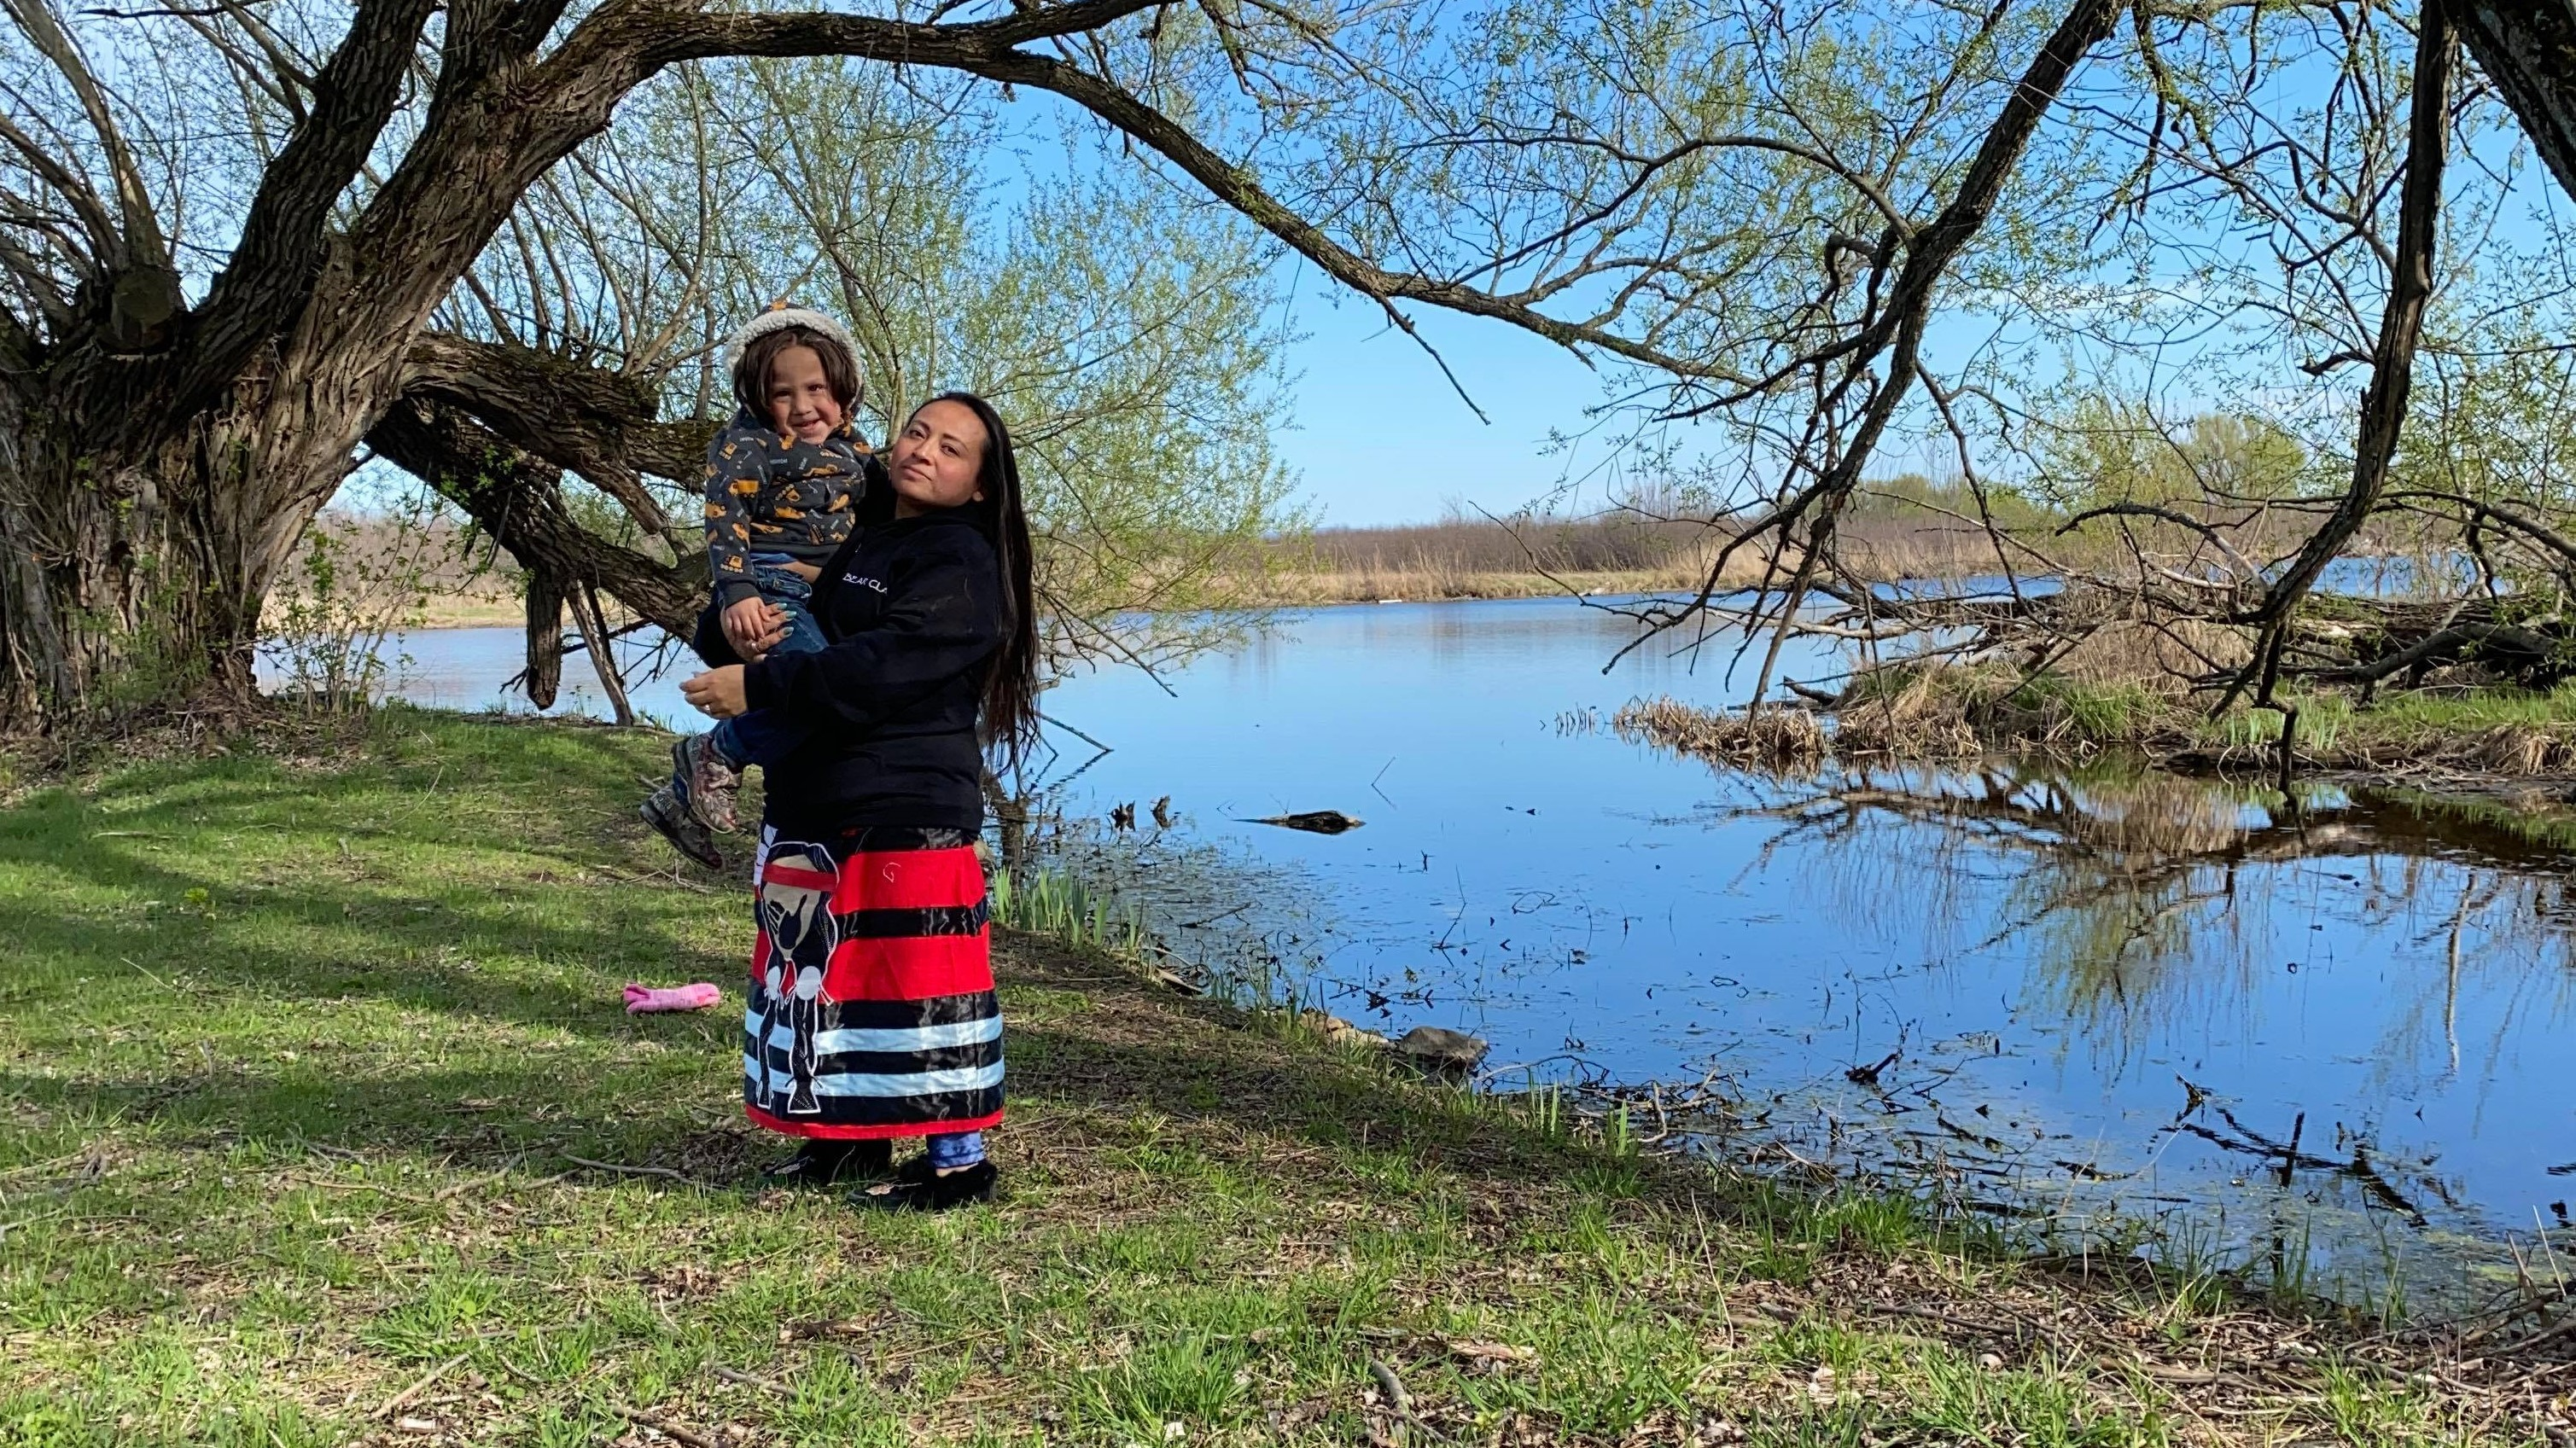 Chrissy Jacobs and her three-year-old son Thikaweraien at the land back language camp. (Submitted by Chrissy Jacobs)